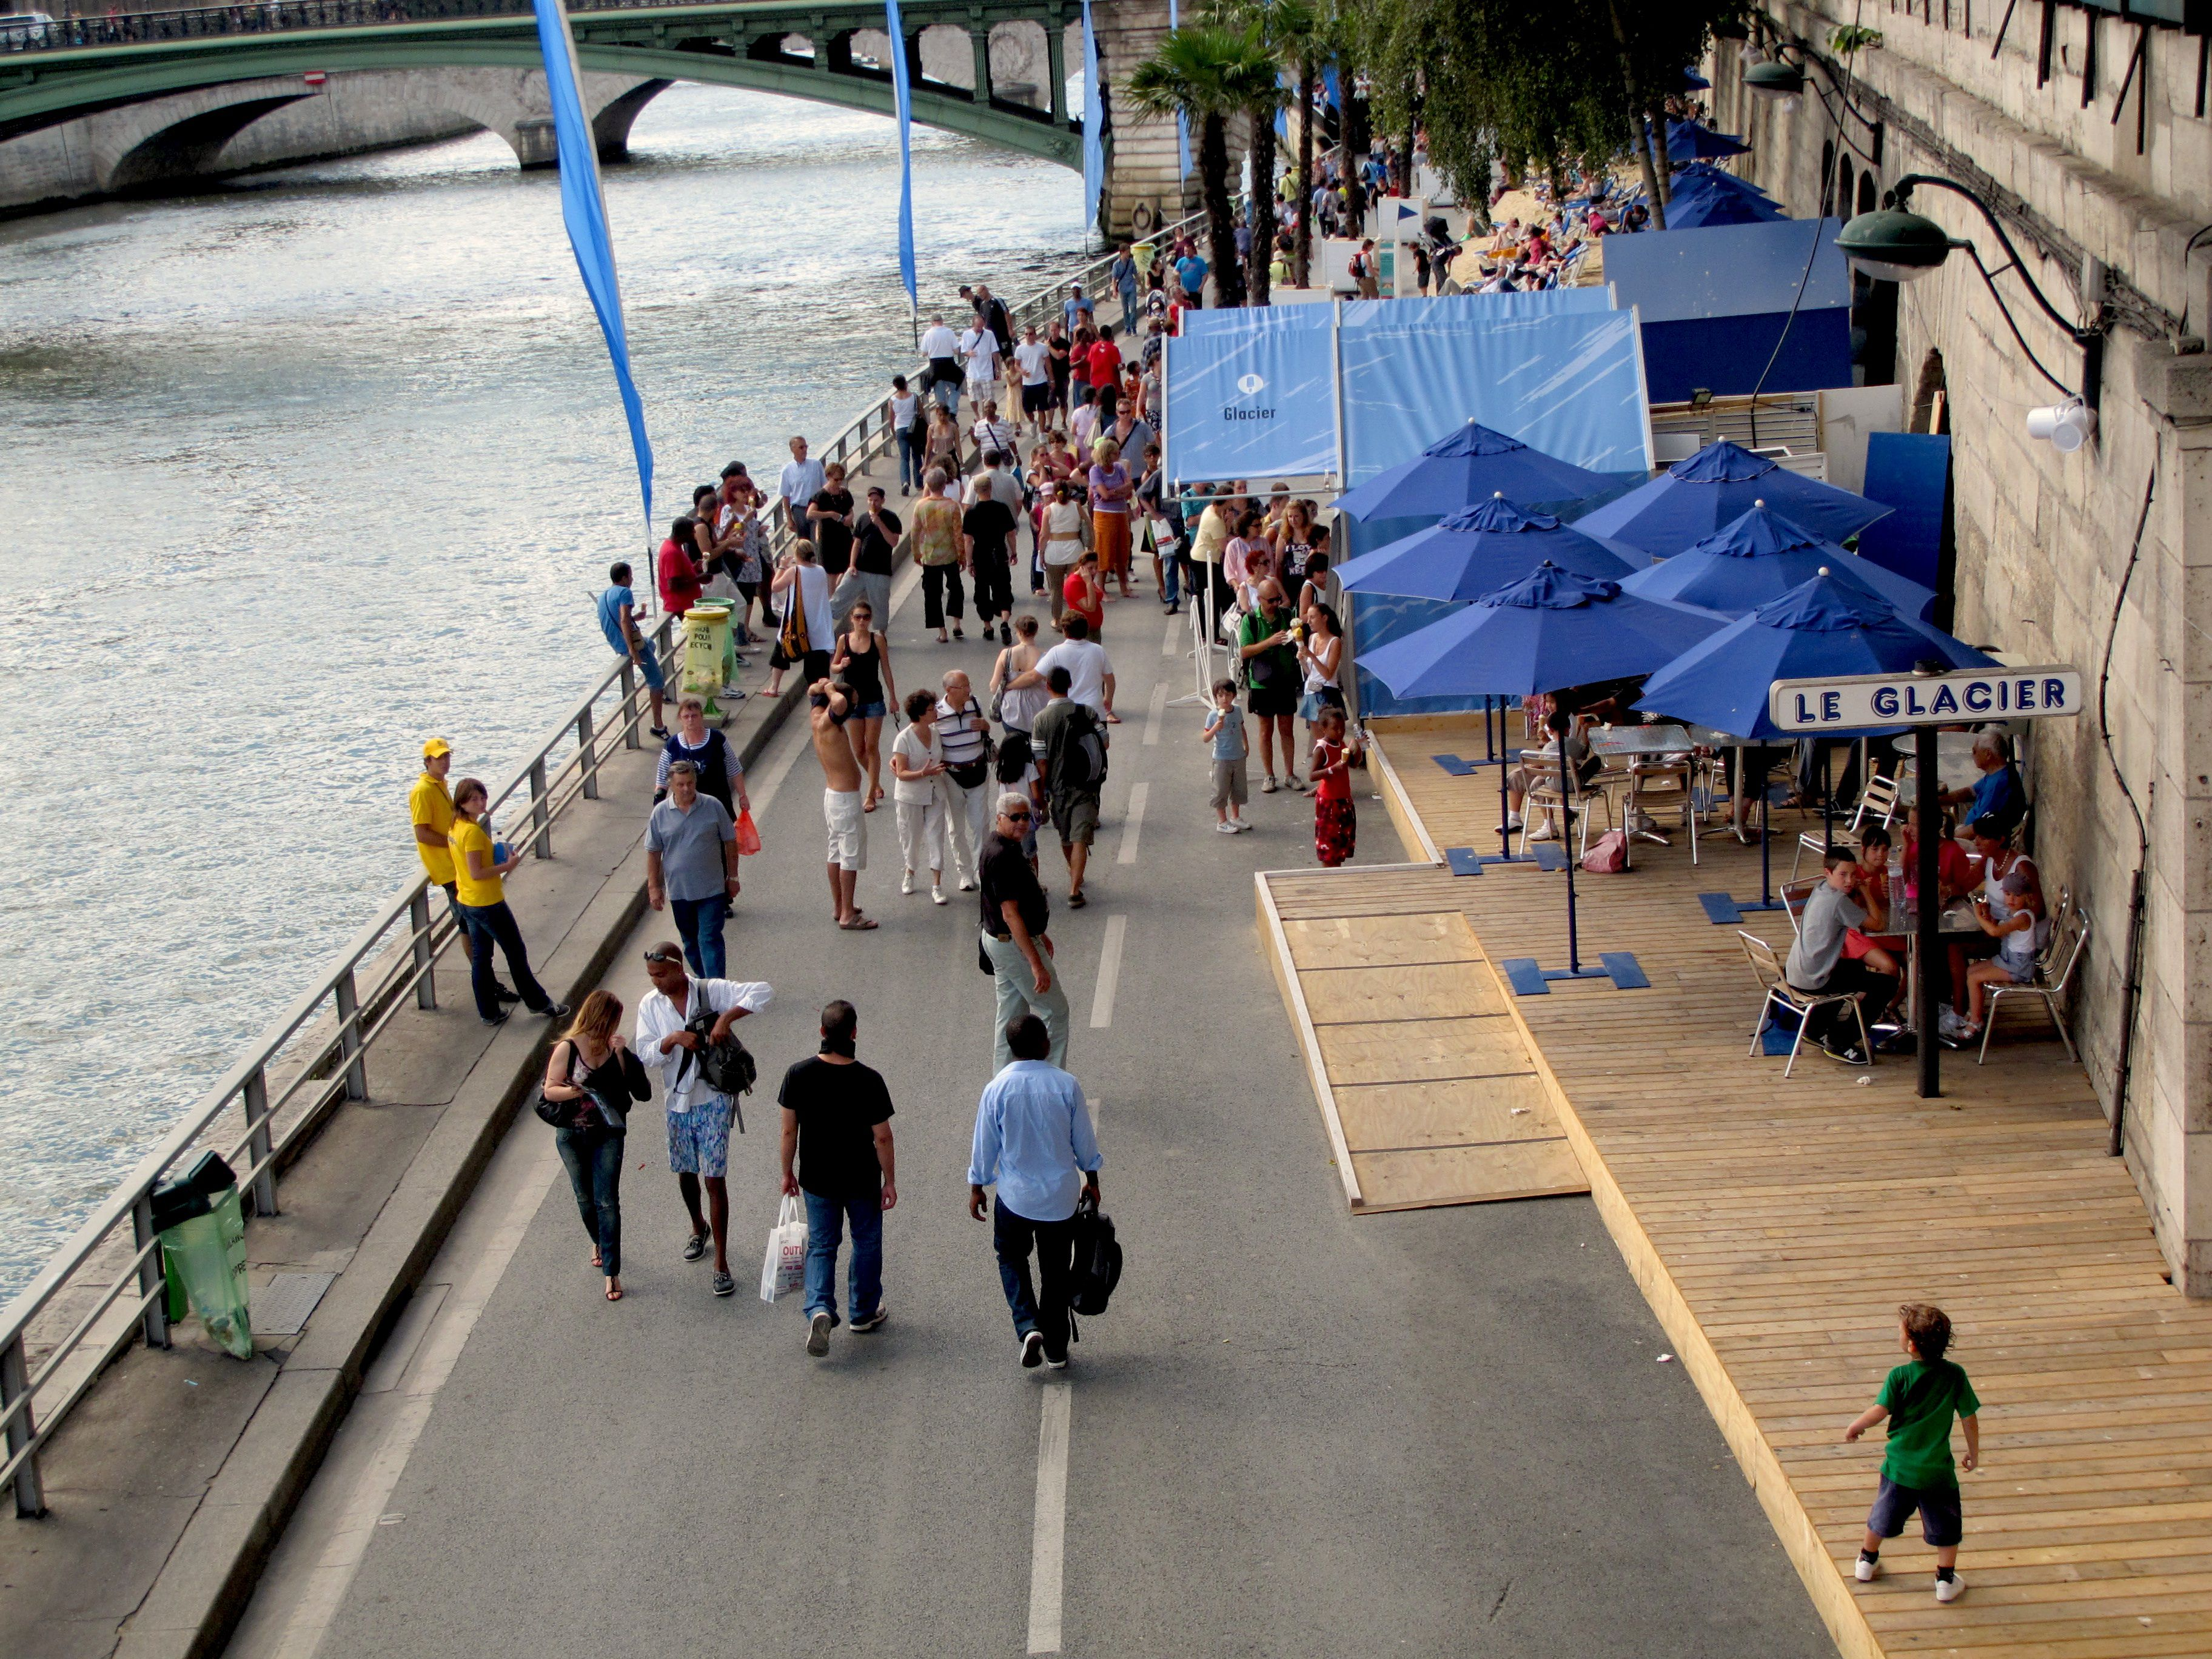 Paris Plages is a popular summer event in the French capital.